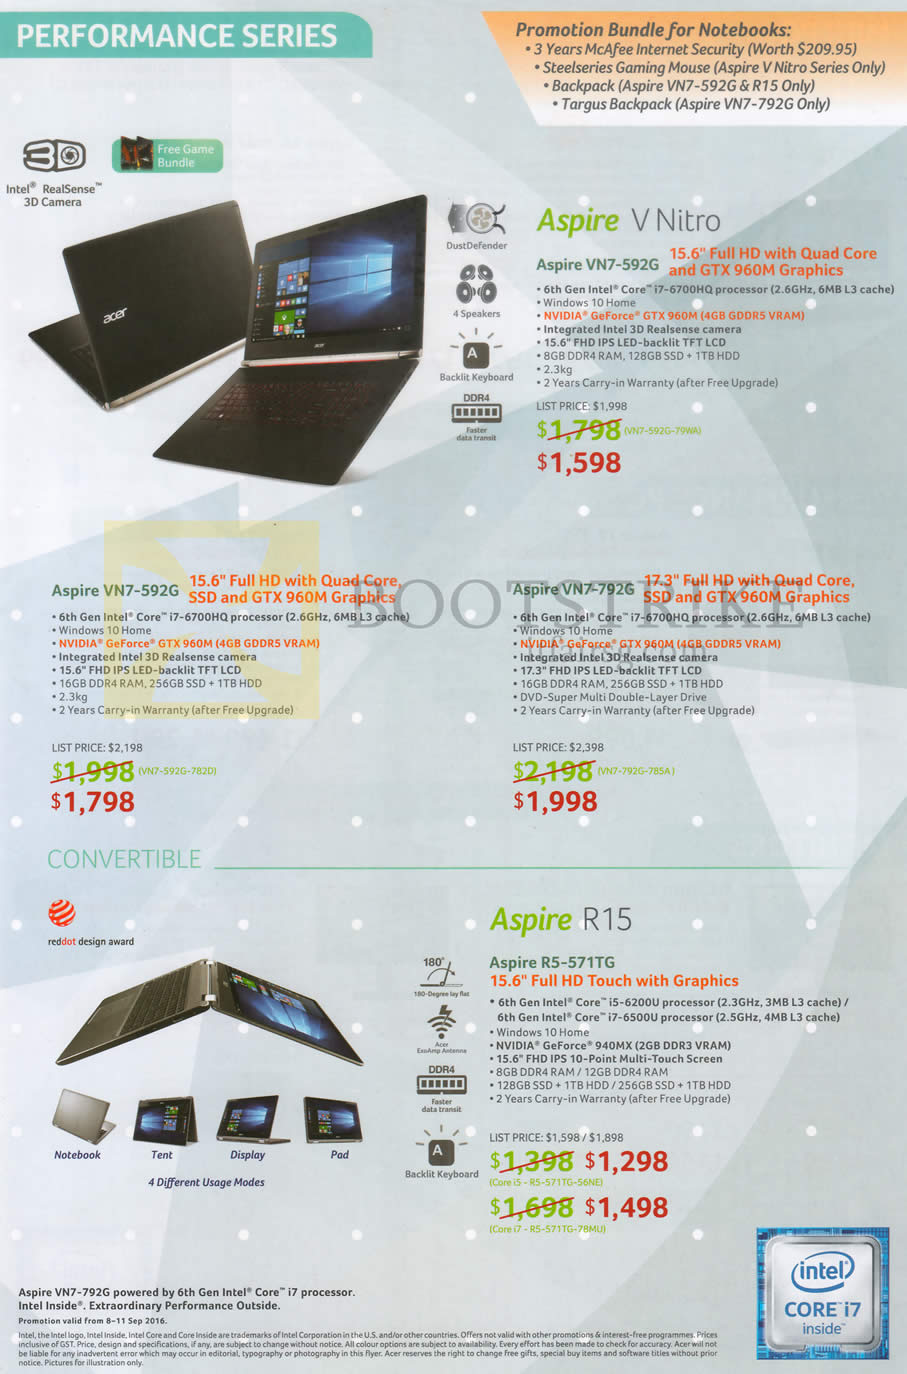 COMEX 2016 price list image brochure of Acer Aspire Notebooks V Nitro VN7-592G, VN7-792G, R5-571TG